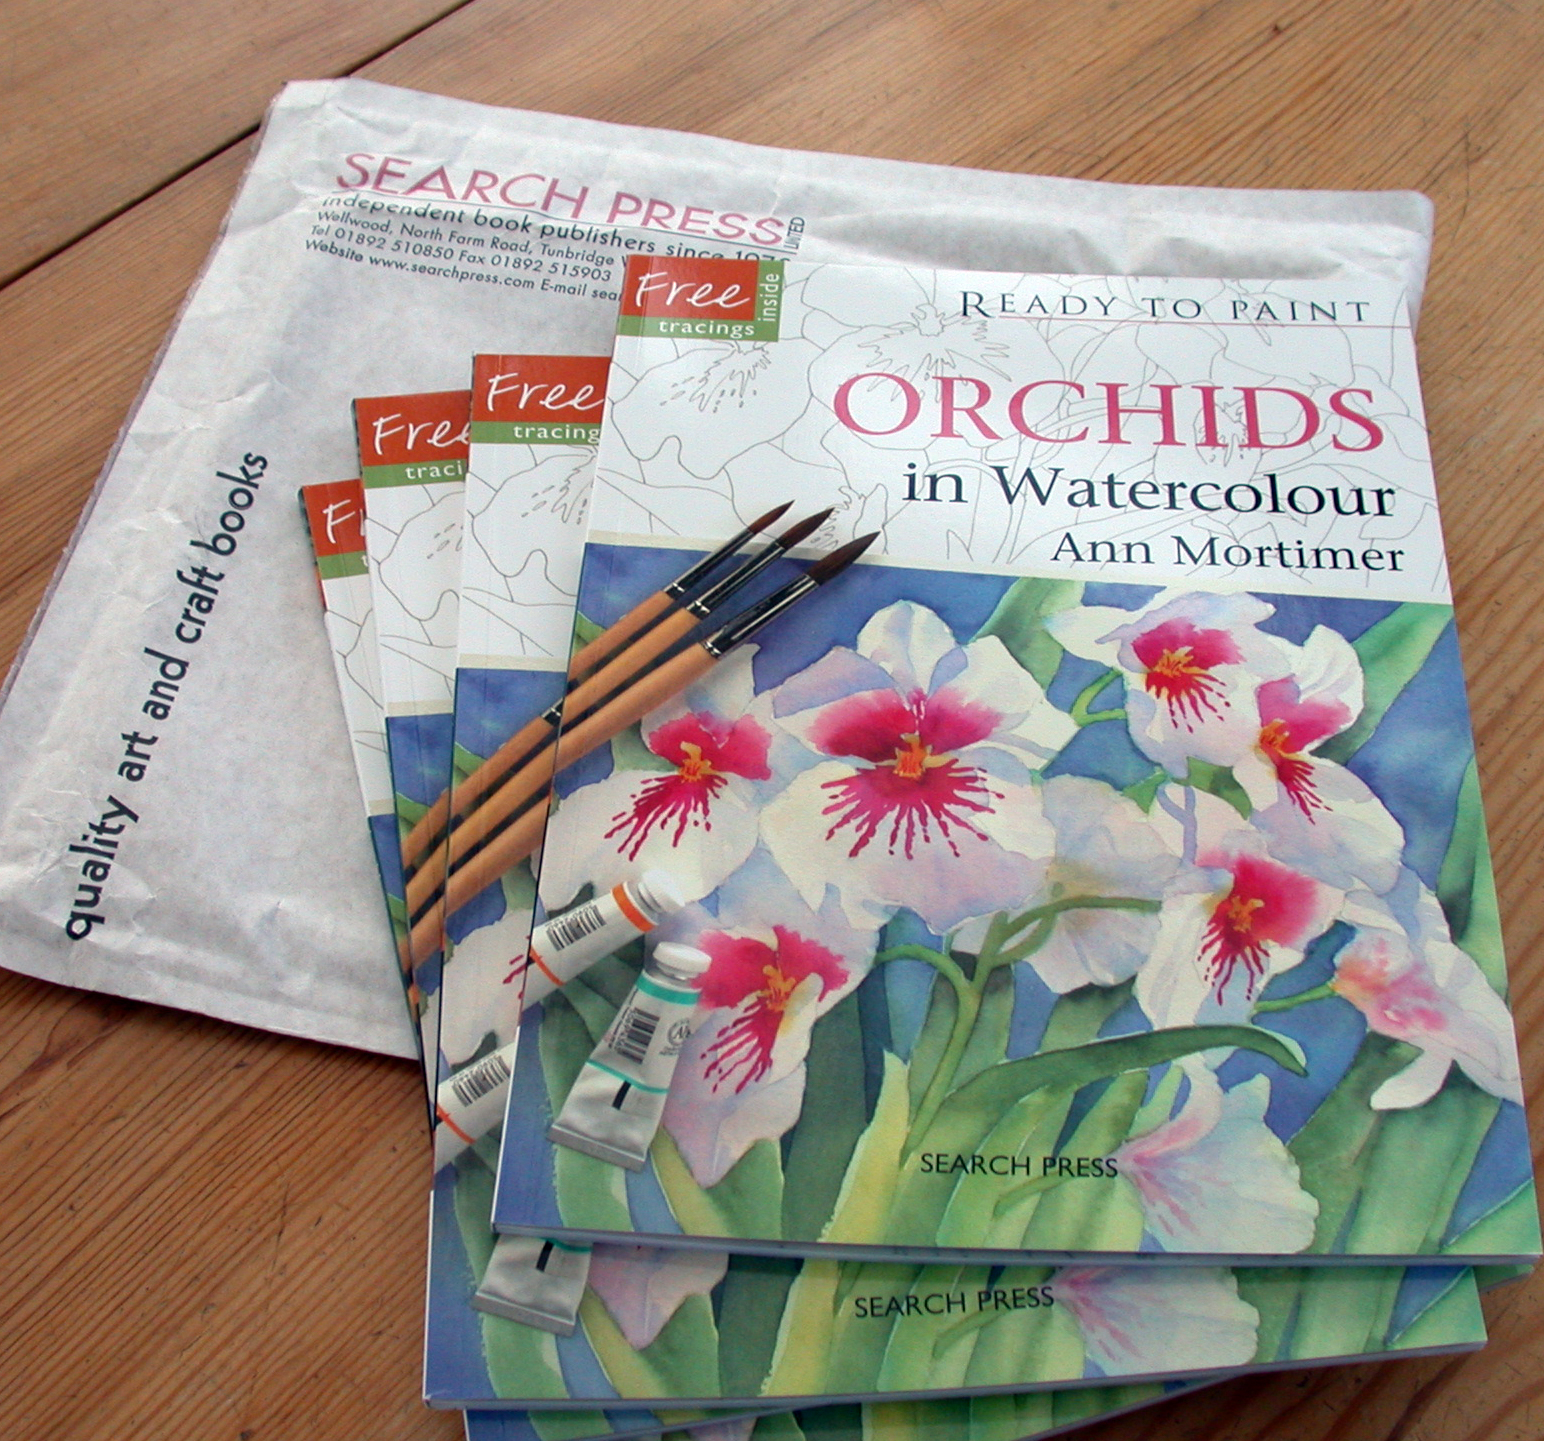 Watercolor books by search press - New Book Ready To Paint Orchids In Watercolour